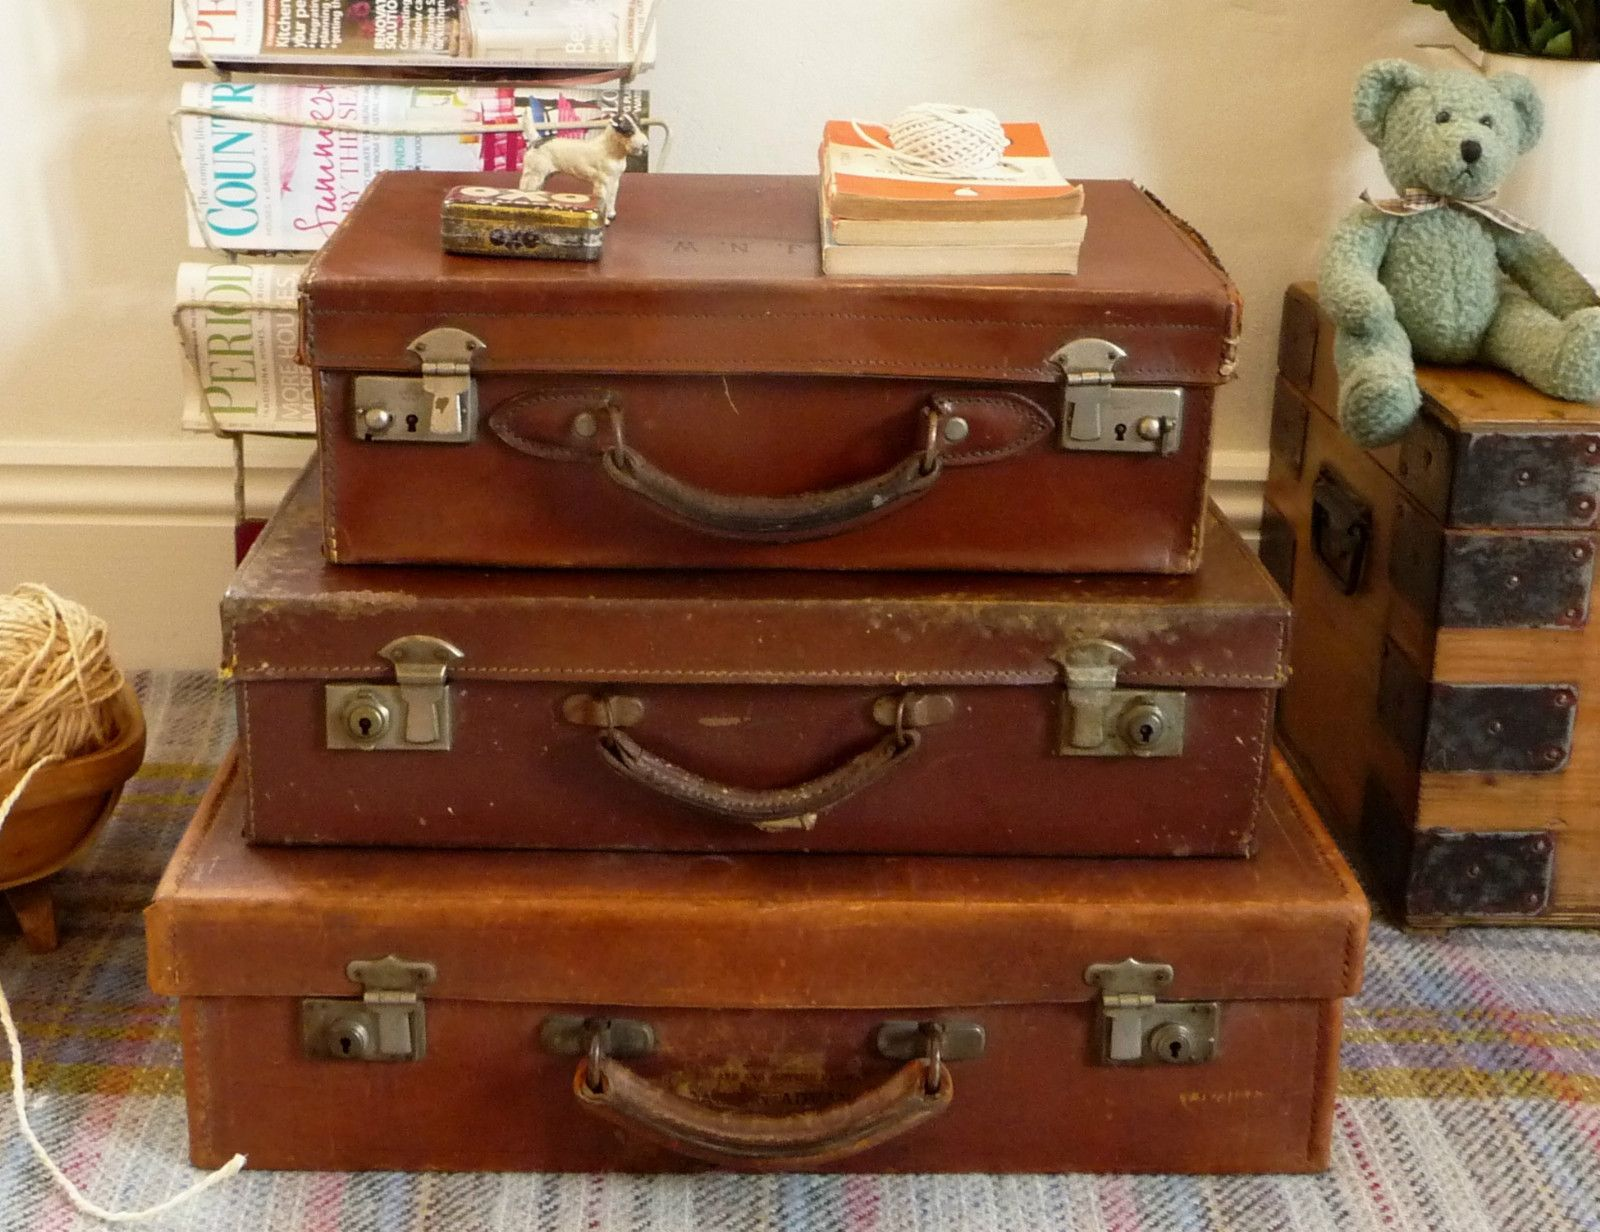 3 VINTAGE SUITCASES Storage Boxes SET of THREE OLD CASES Luggage ...